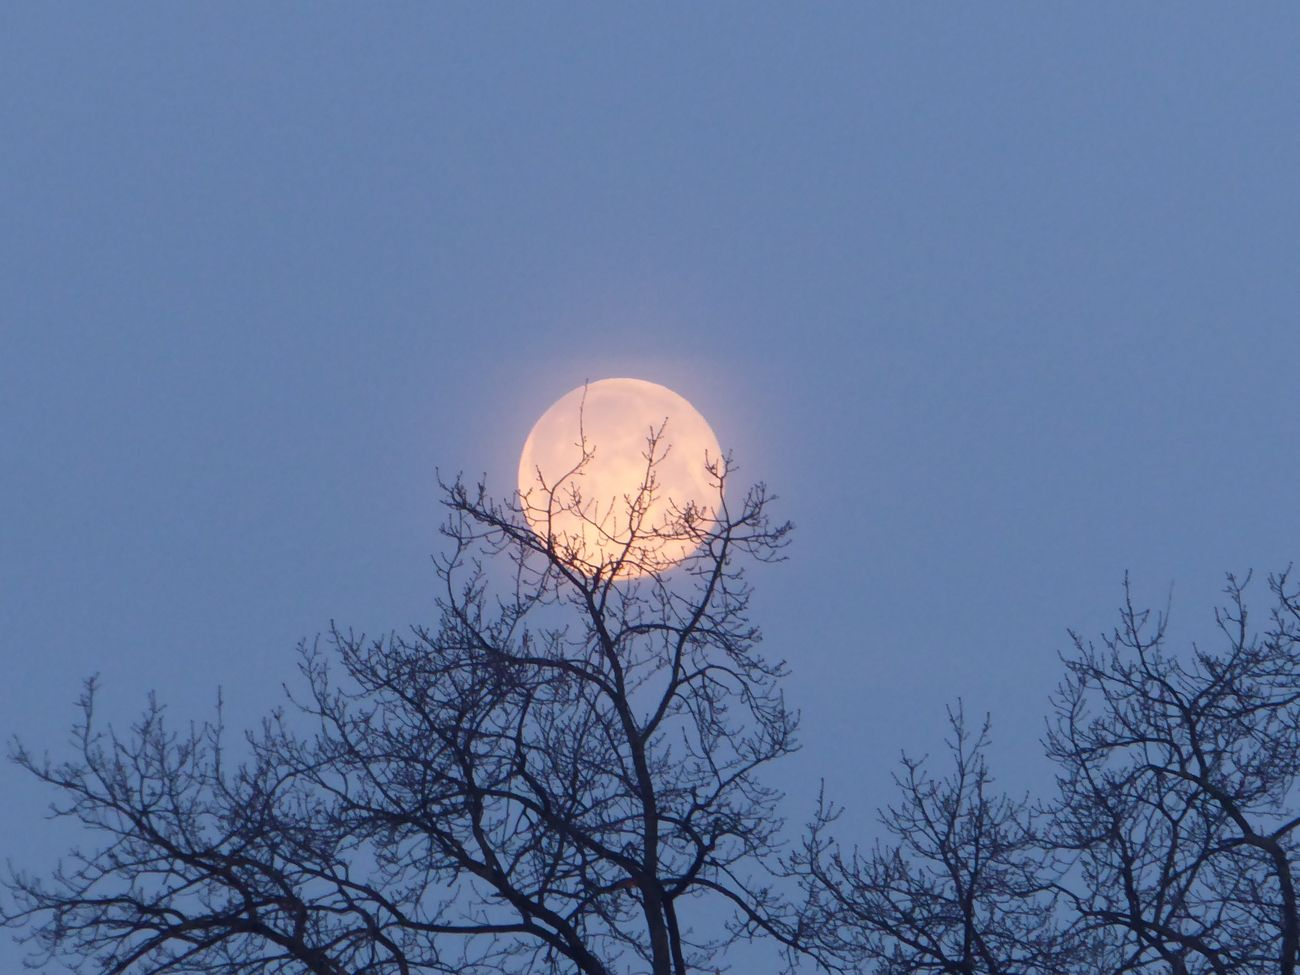 Full Moon In The Morning Tranquility Bare Tree Beauty In Nature Enjoyinglife  For My Friends 😍😘🎁 Tranquility Beauty In Nature Nature Morningviews Looking Up😍 Silhouette Photography